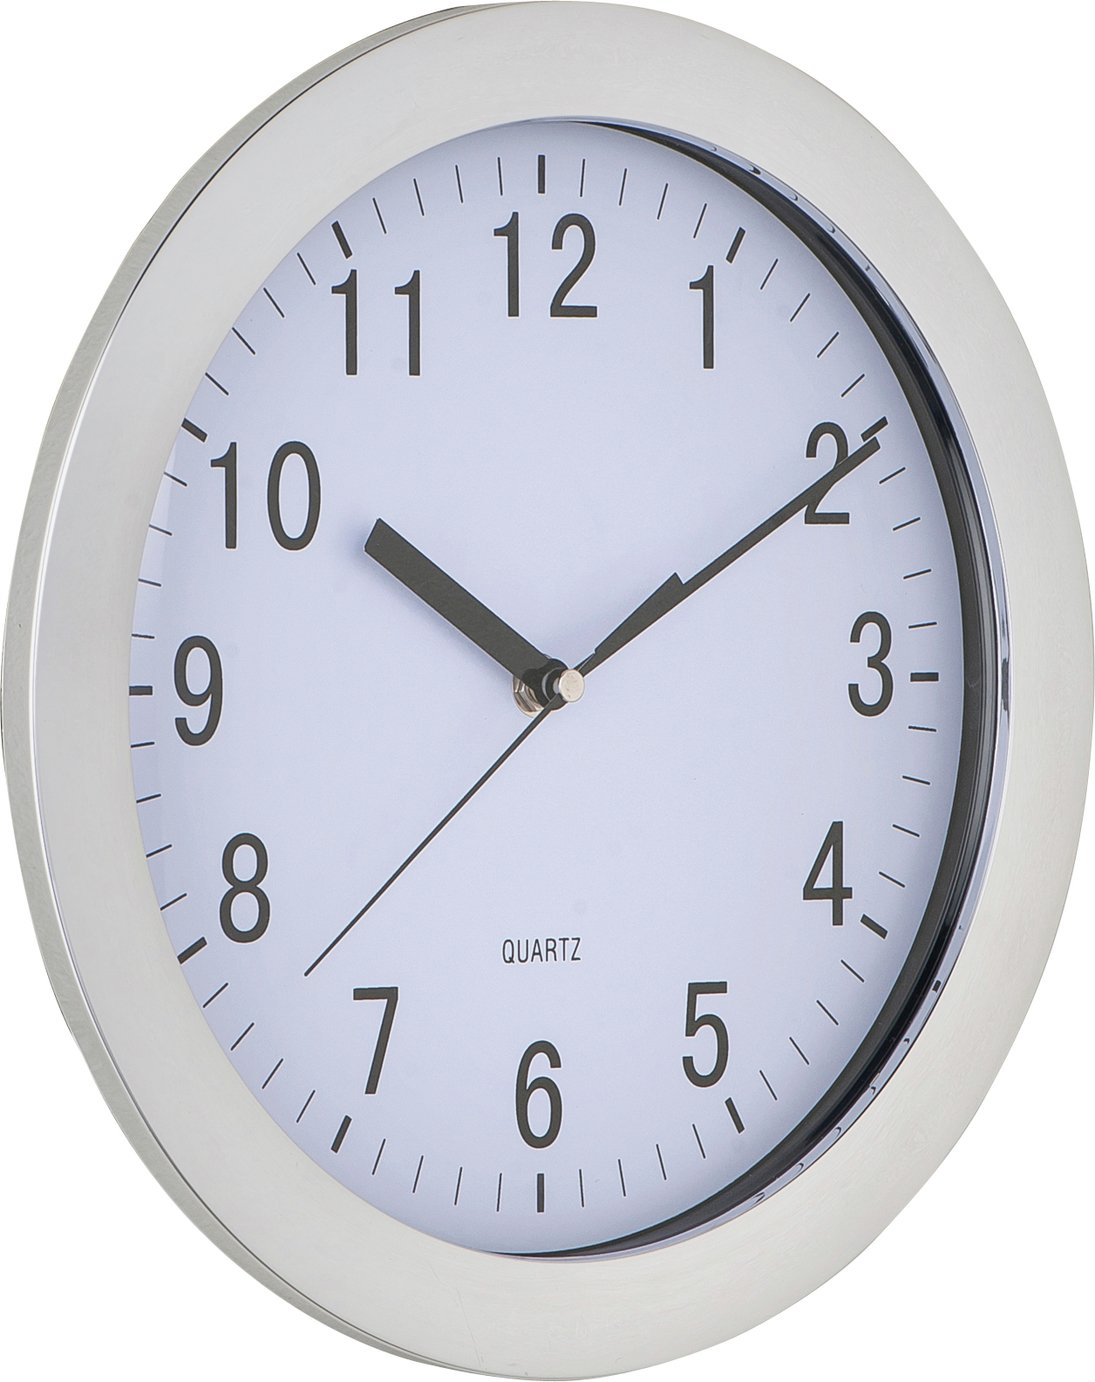 Argos Home Wall Clock - Chrome